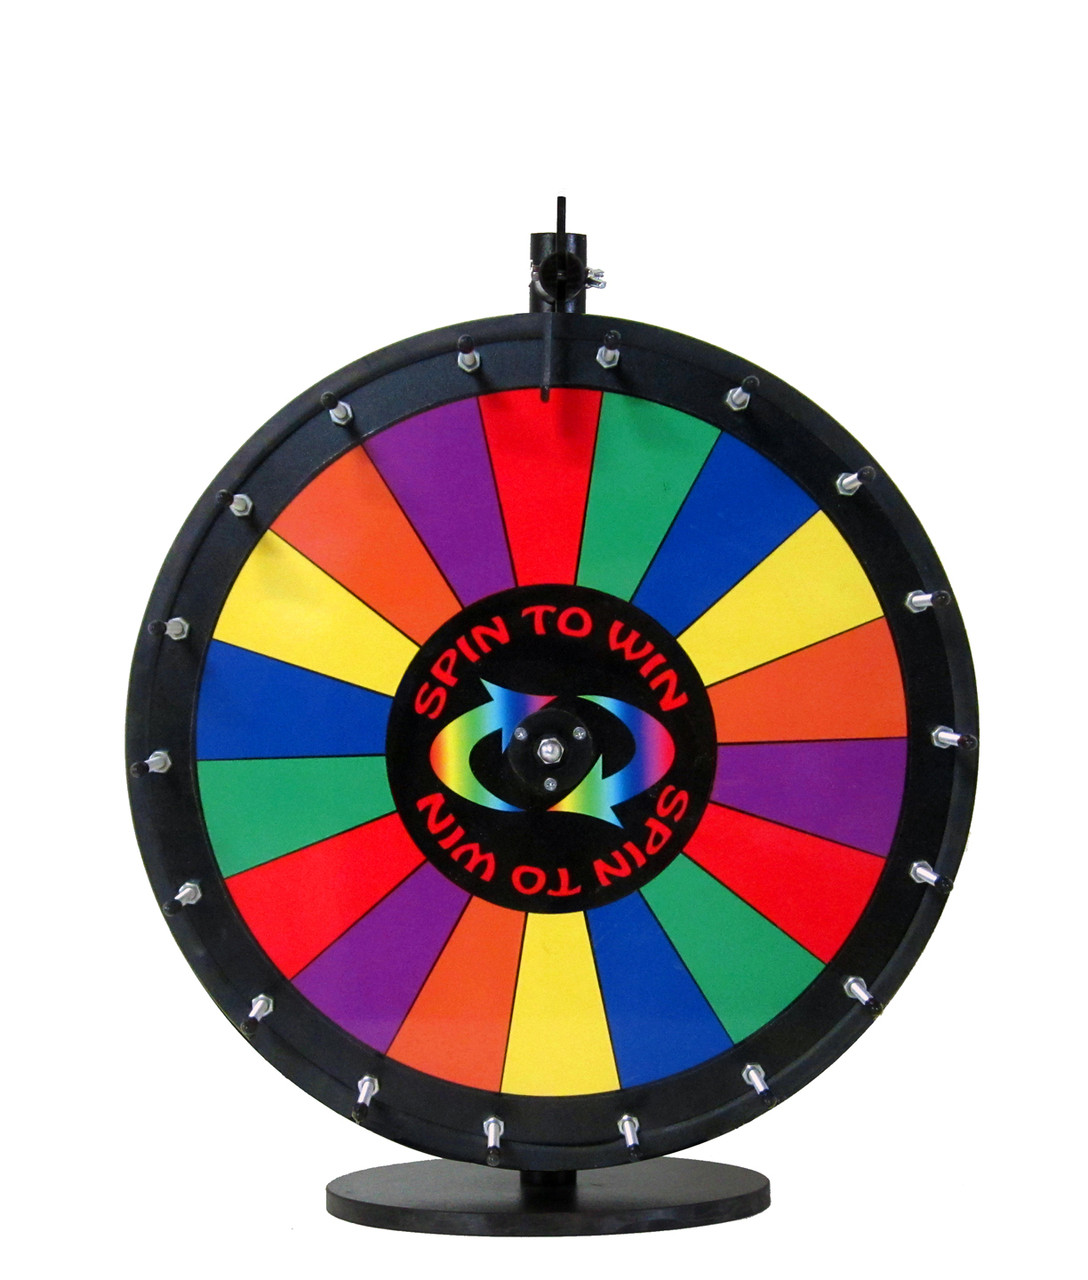 18 Inch Spin to Win Color Dry Erase Prize Wheel with 18 sections